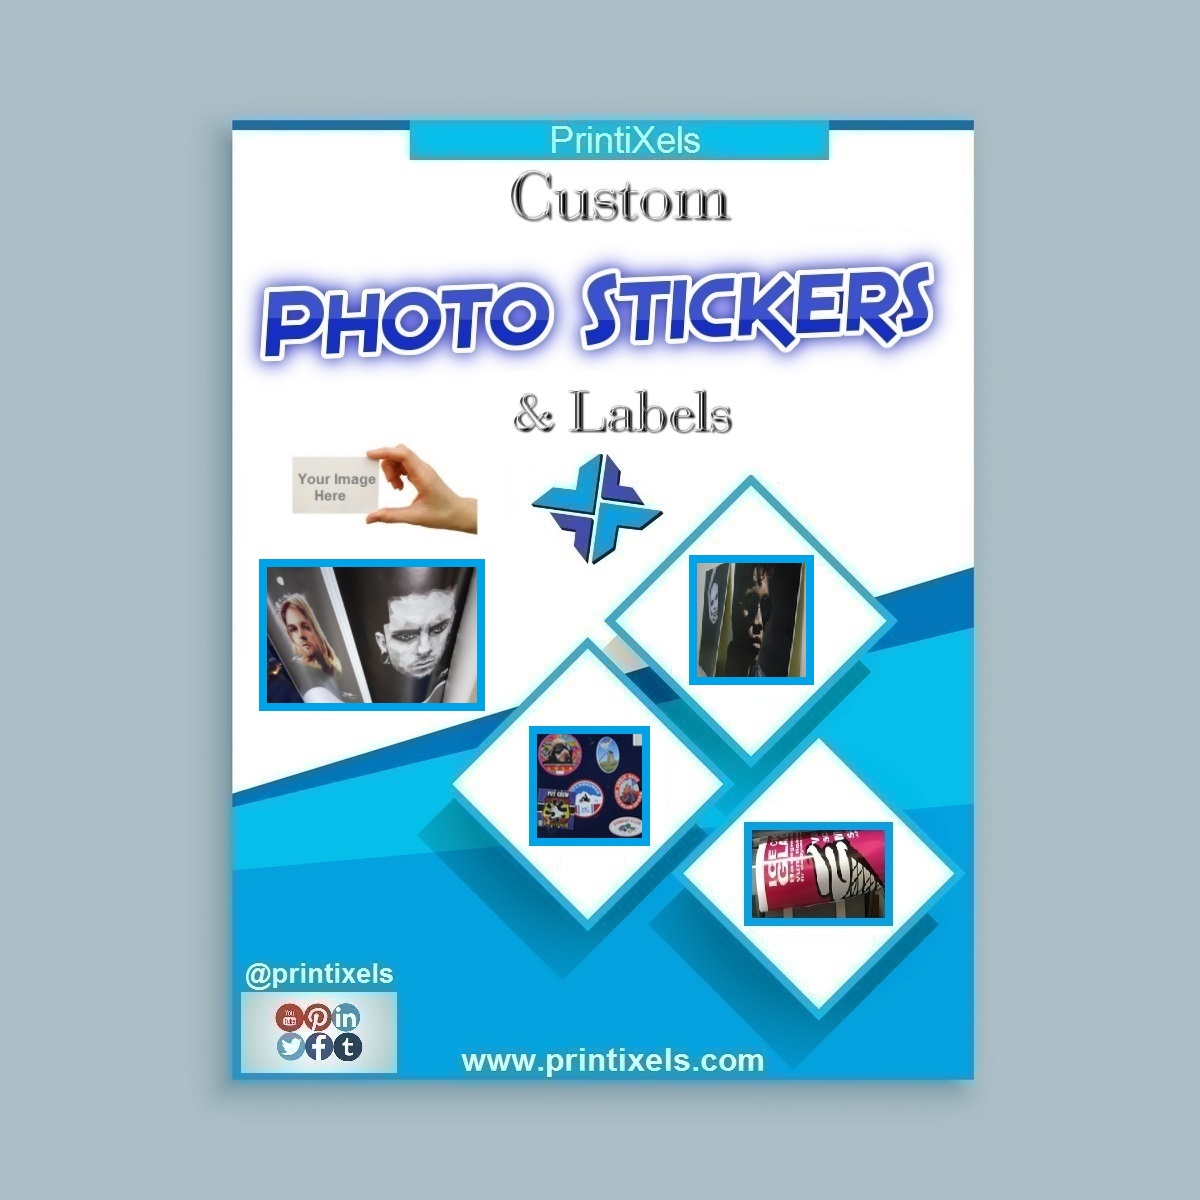 Custom Photo Stickers & Labels